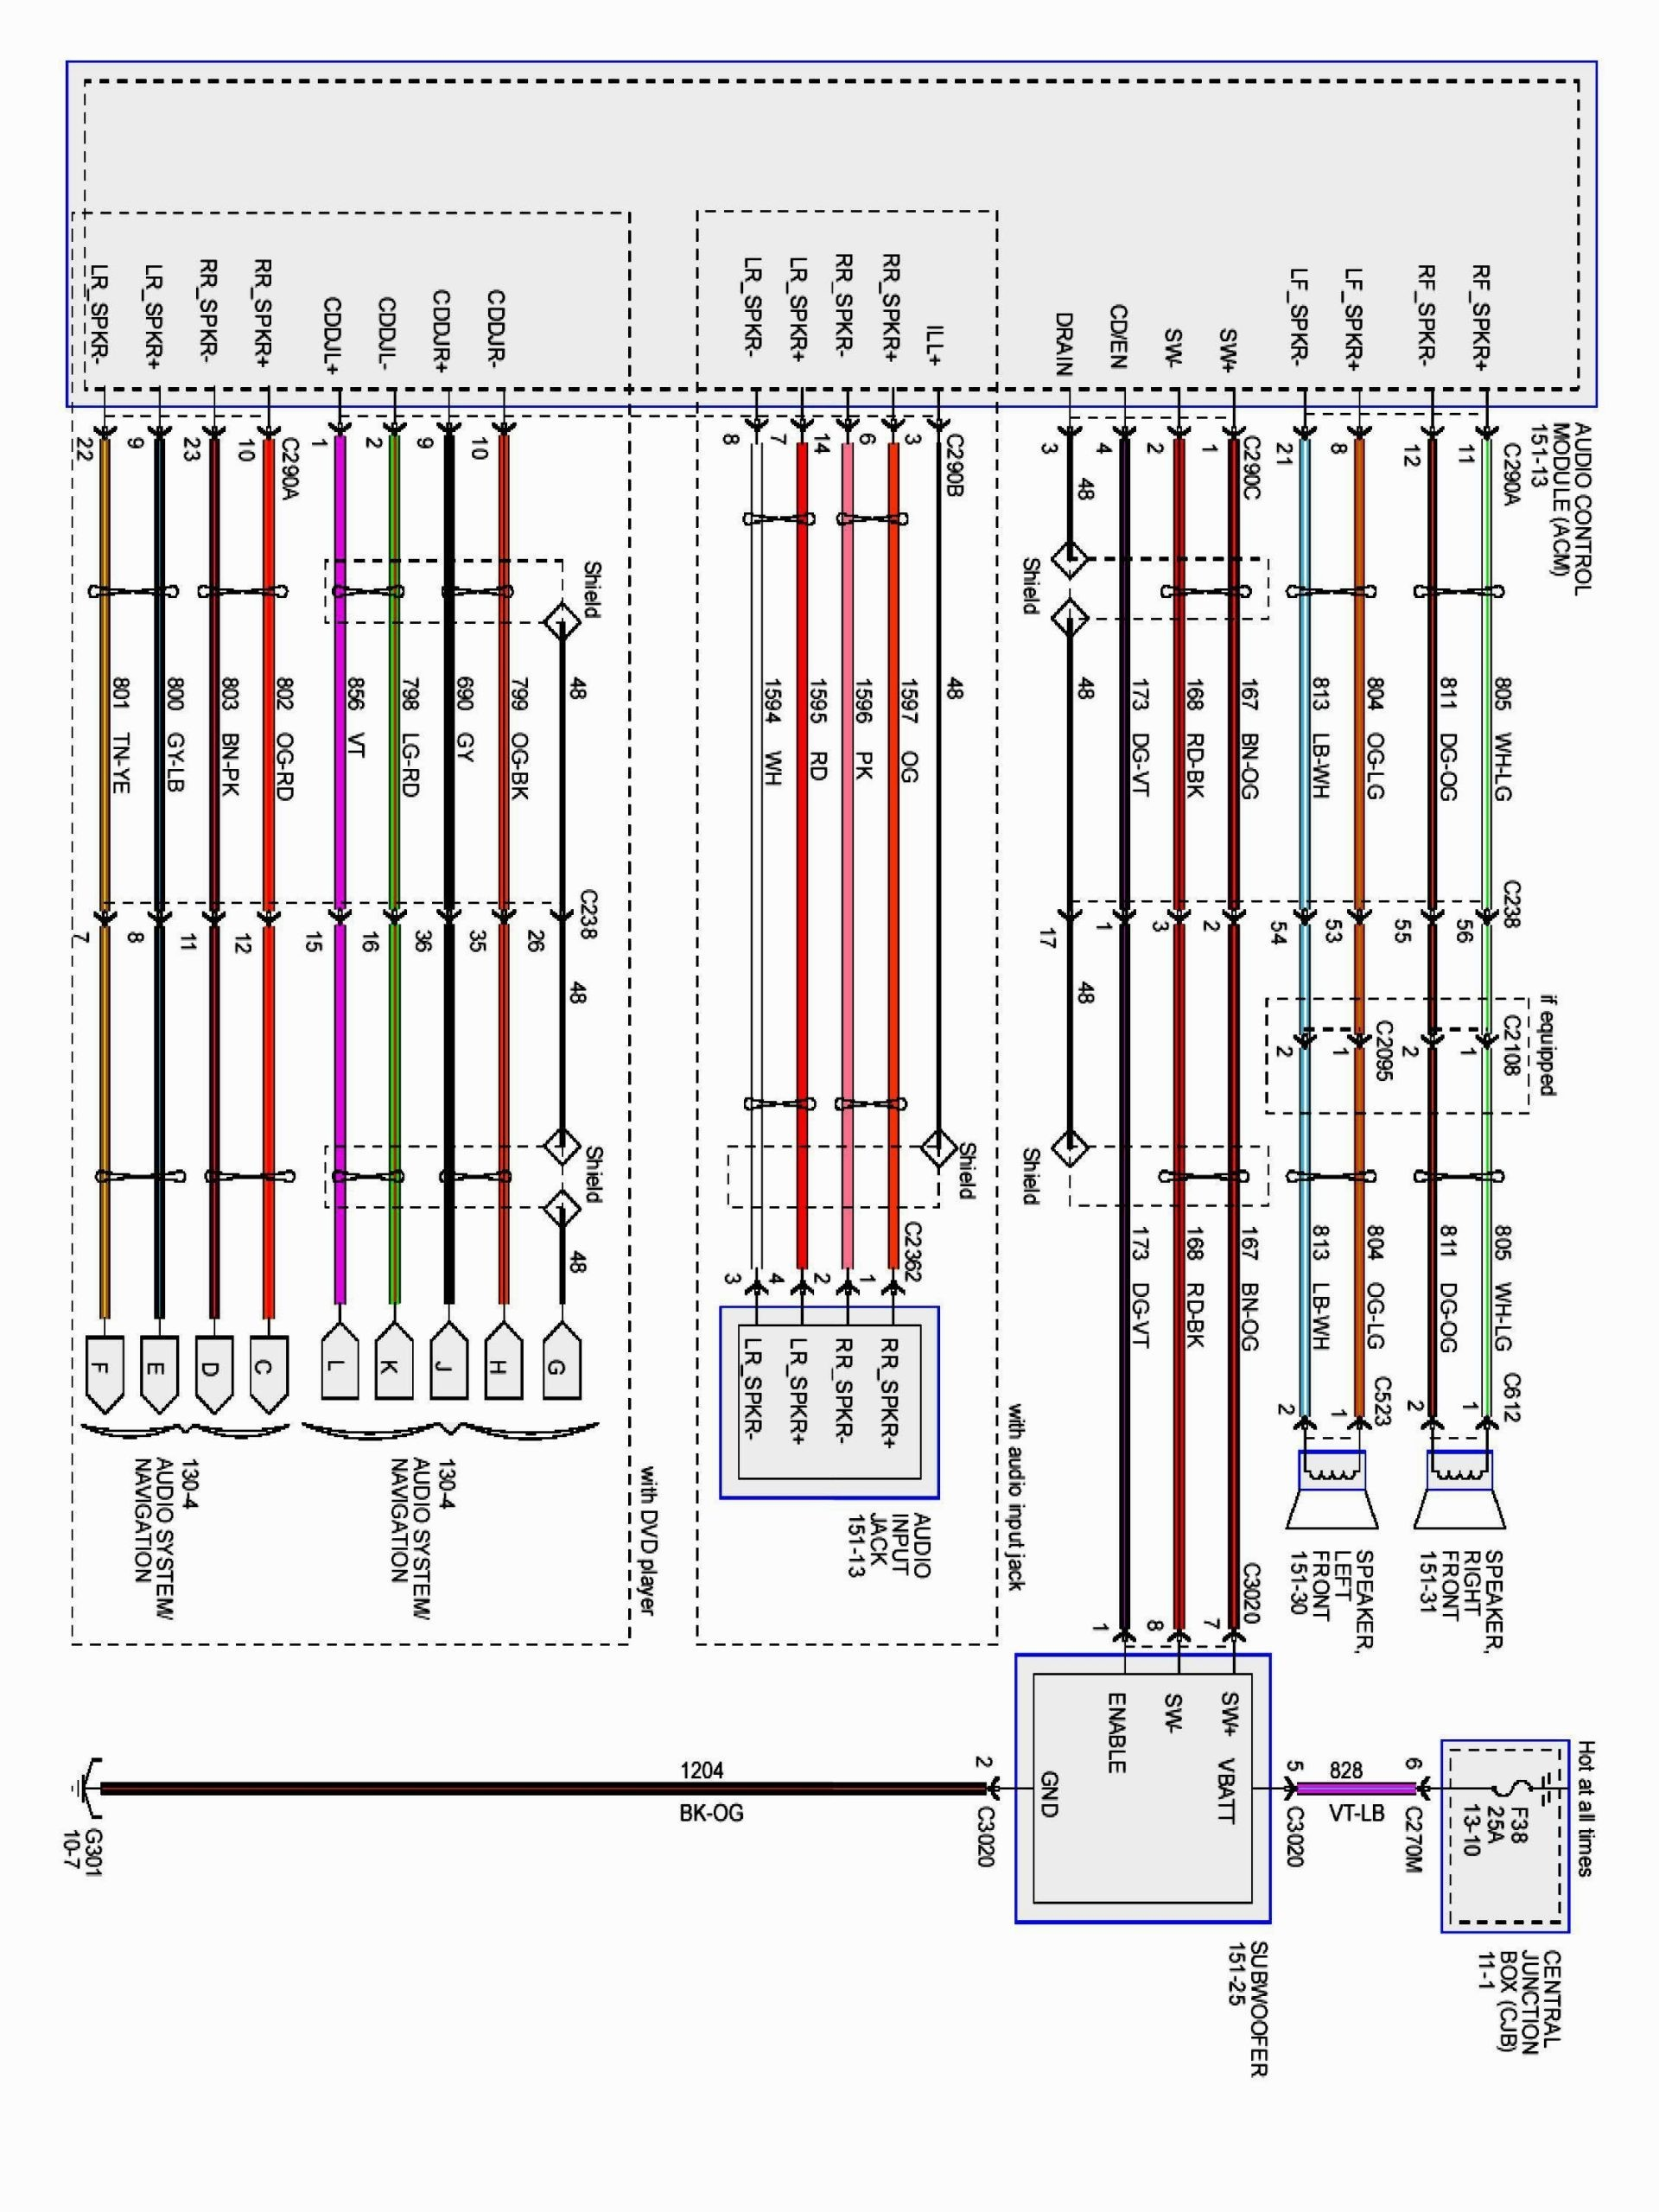 hight resolution of clarion vz401 wiring diagram 2012 wiring diagram meta clarion vz401 wiring diagram 2012